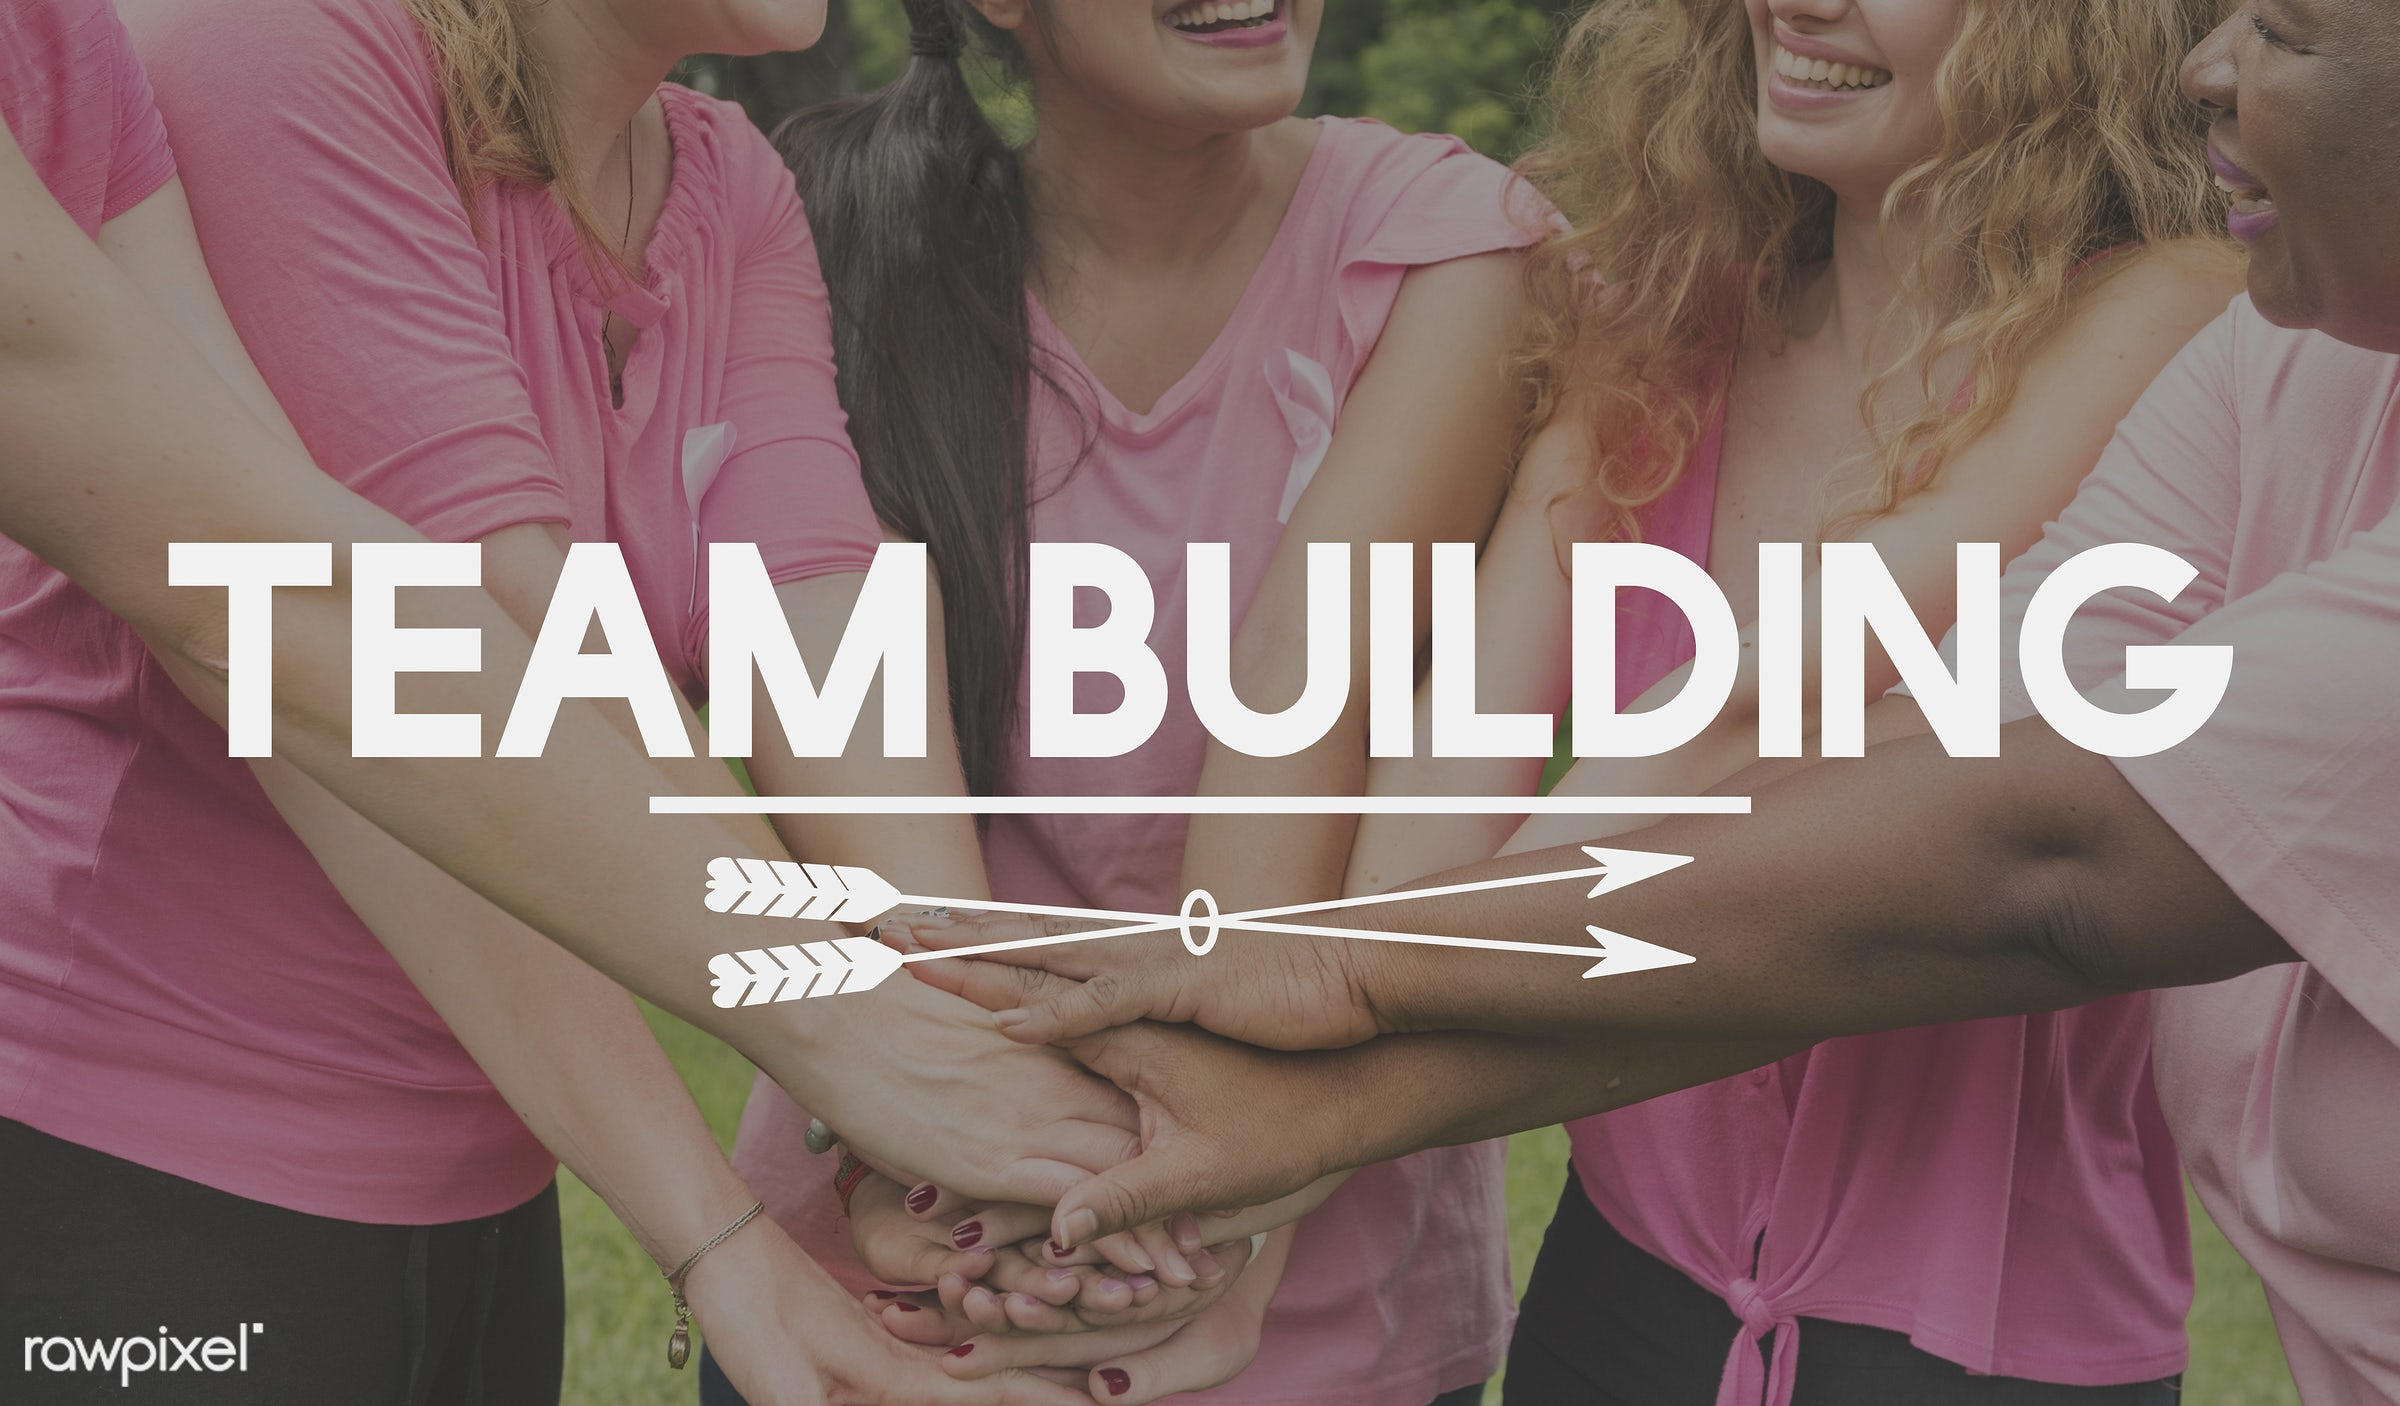 adult, african american, brand, breast, breast cancer, building, can, cancer, caucasian, cheerful, diversity, female, fight...